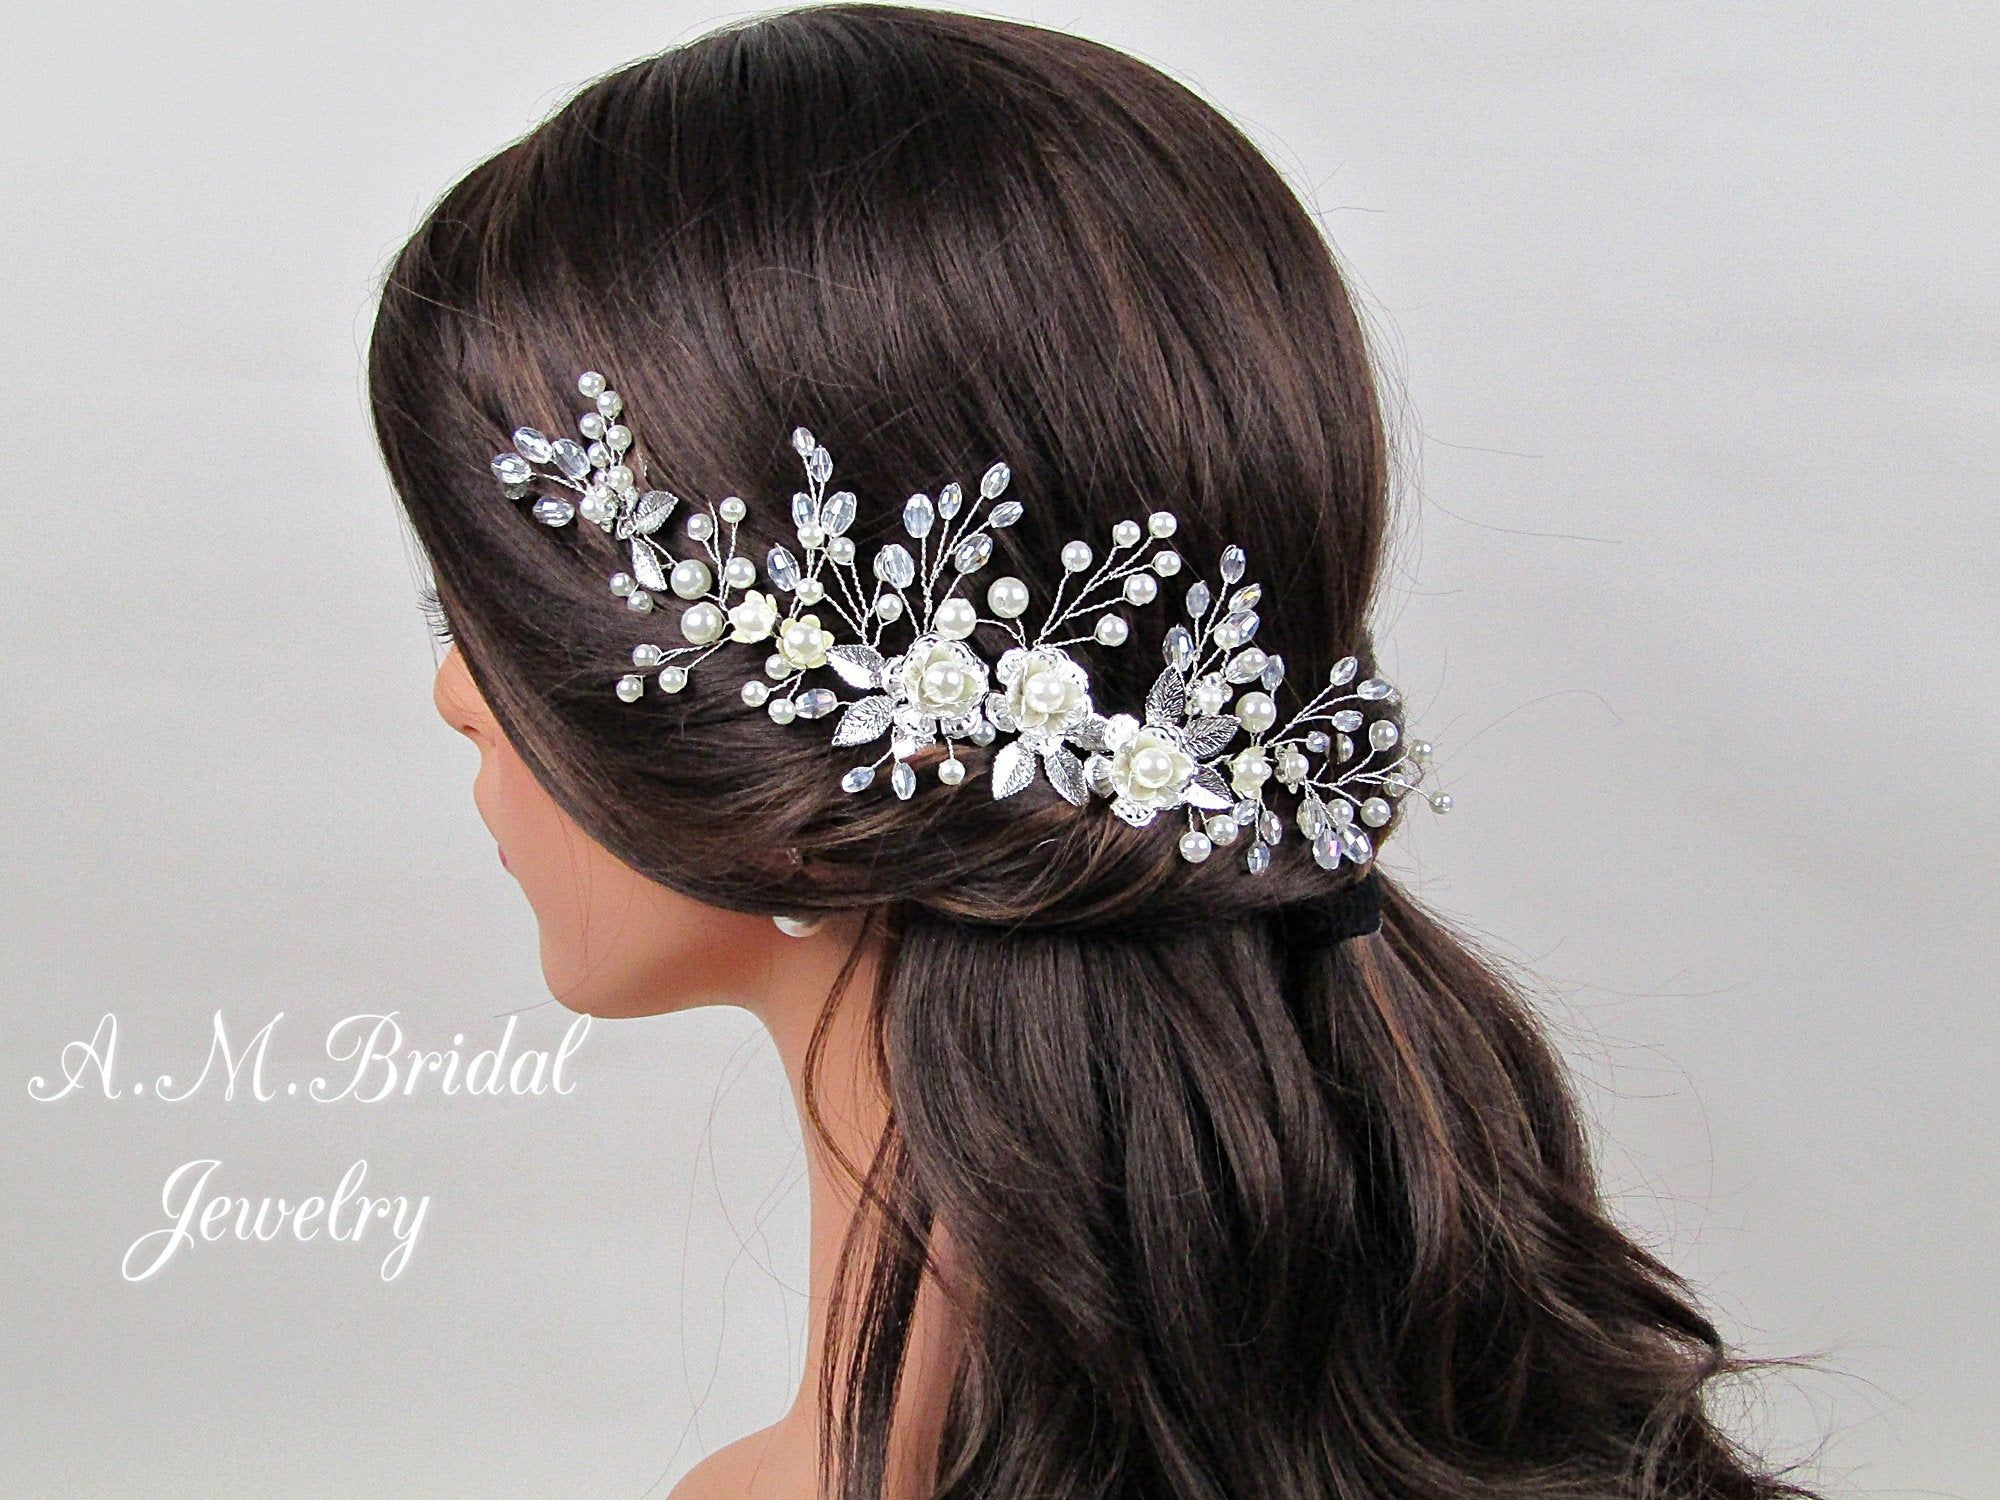 Floral Pearl & Crystal Bridal Headpiece Pearl Bridal Hair Vine Crystal Wedding Hair Vine Silver Bridal Hair Piece Wedding Hair Accessories #bridalheadpieces